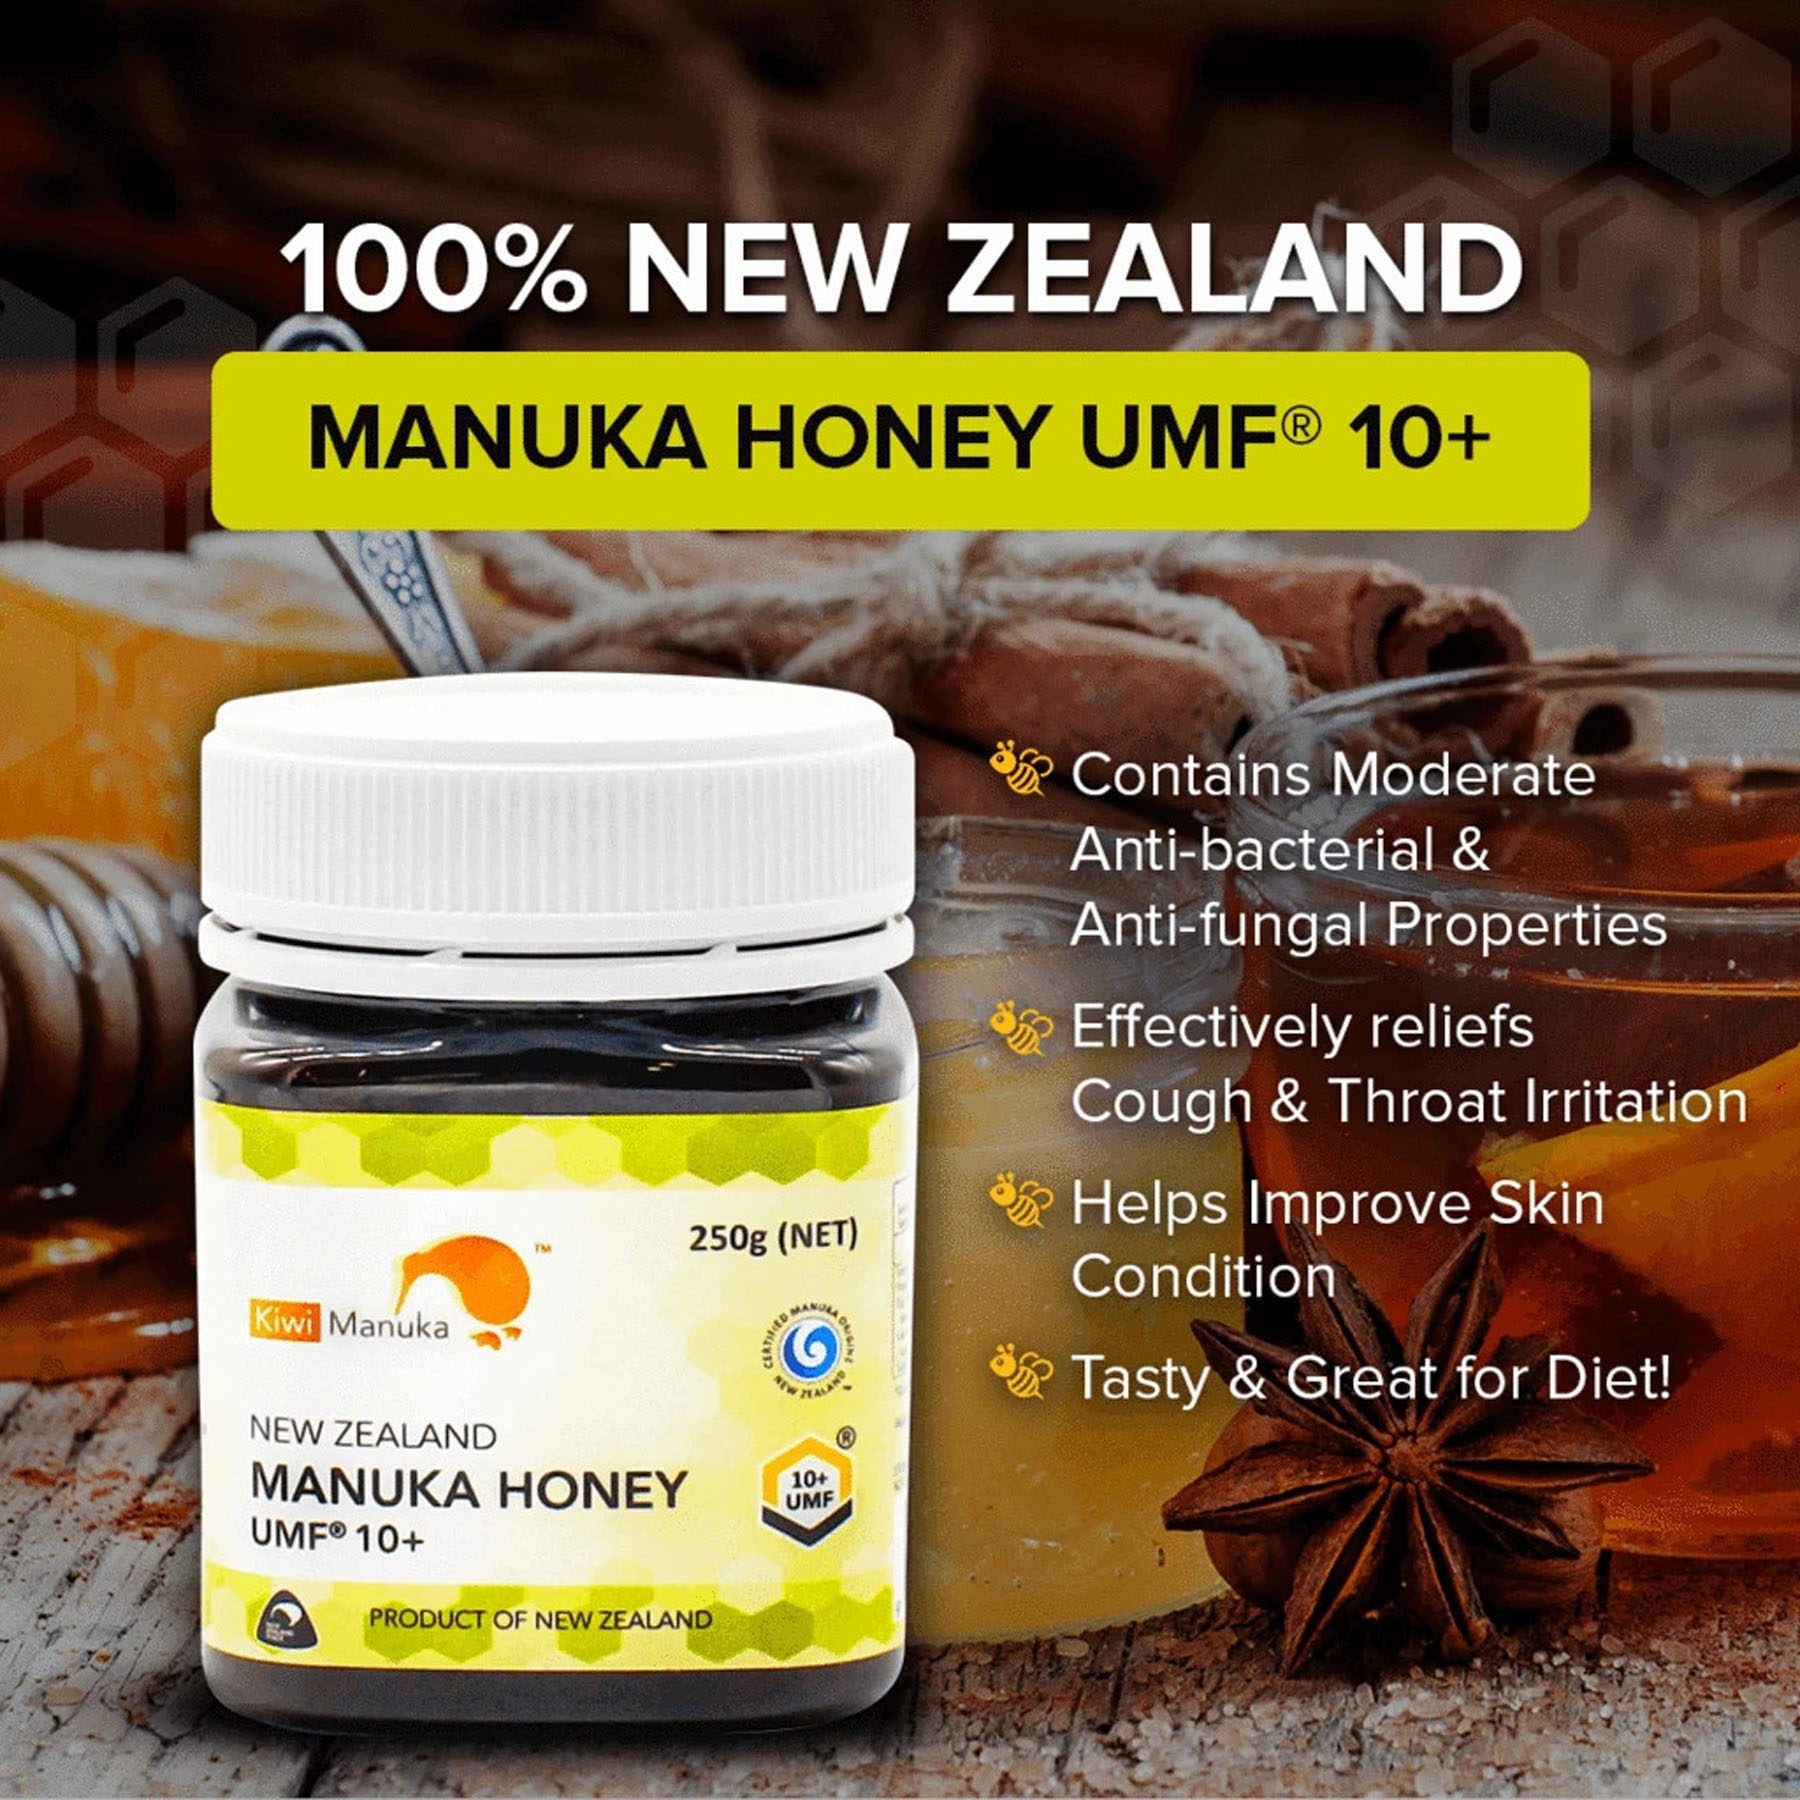 Kiwi Manuka Honey UMF® 10+ 250G